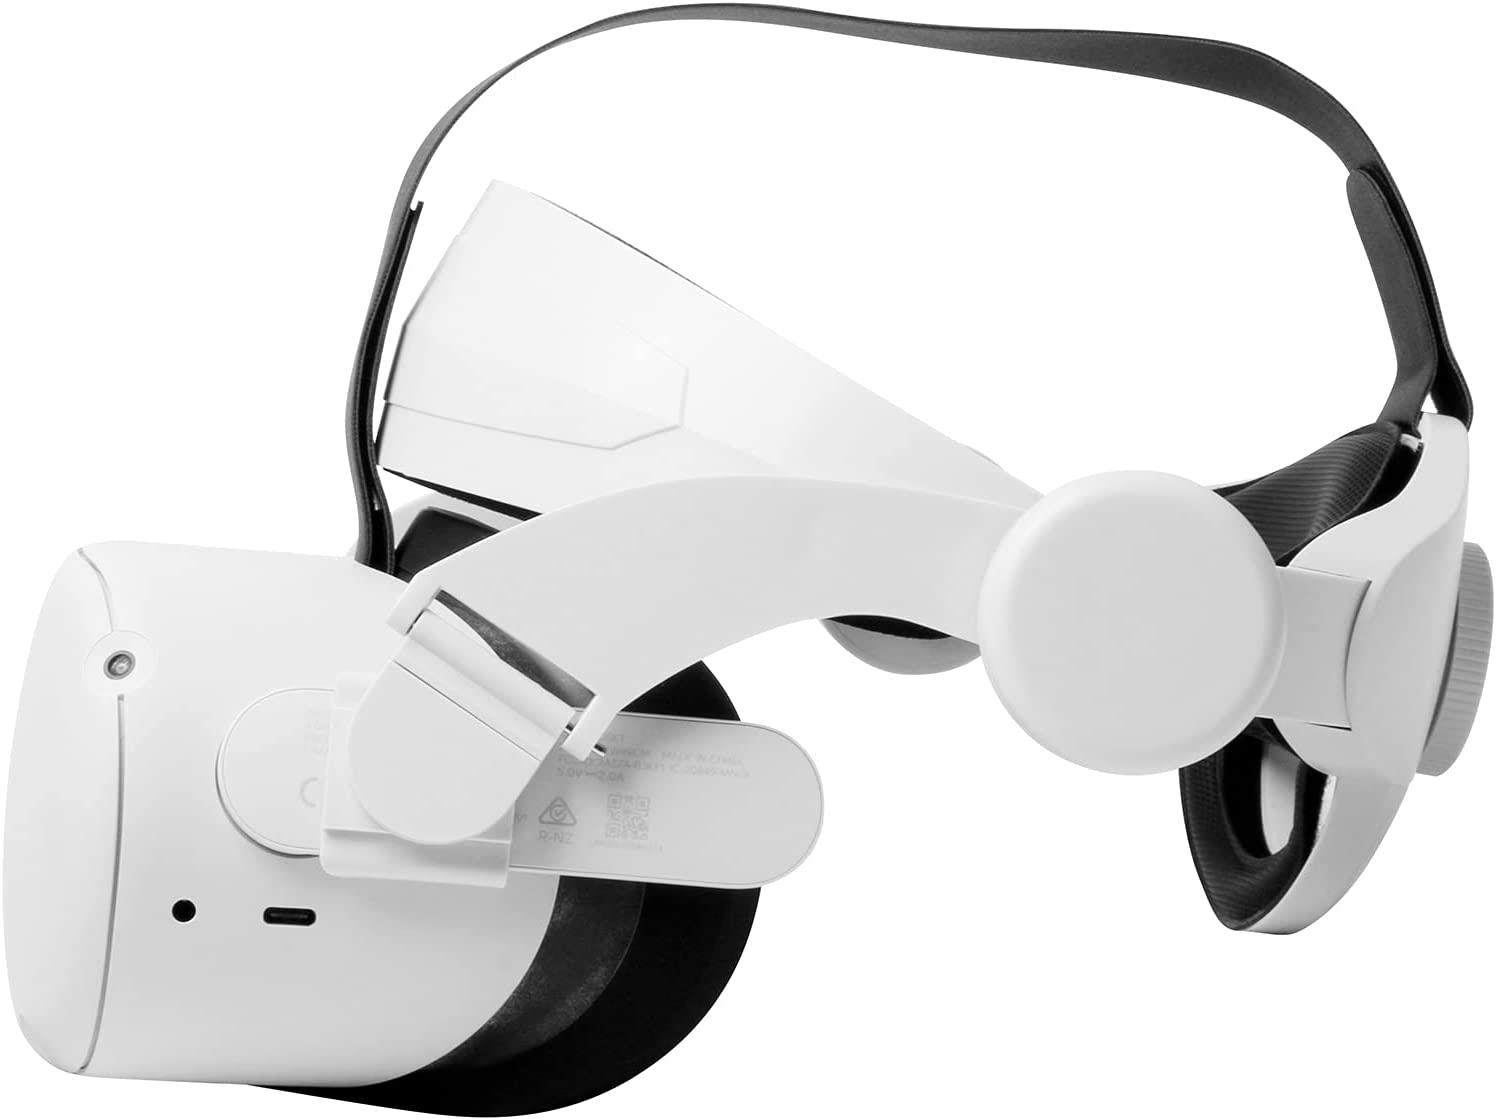 HUAYUWA Adjustable Headband with Head Cushion Compatible for Oculus Quest 2 VR Accessories, Replacement for Elite Strap Comfortable Protective Head Strap Reduce Pressure, White 1